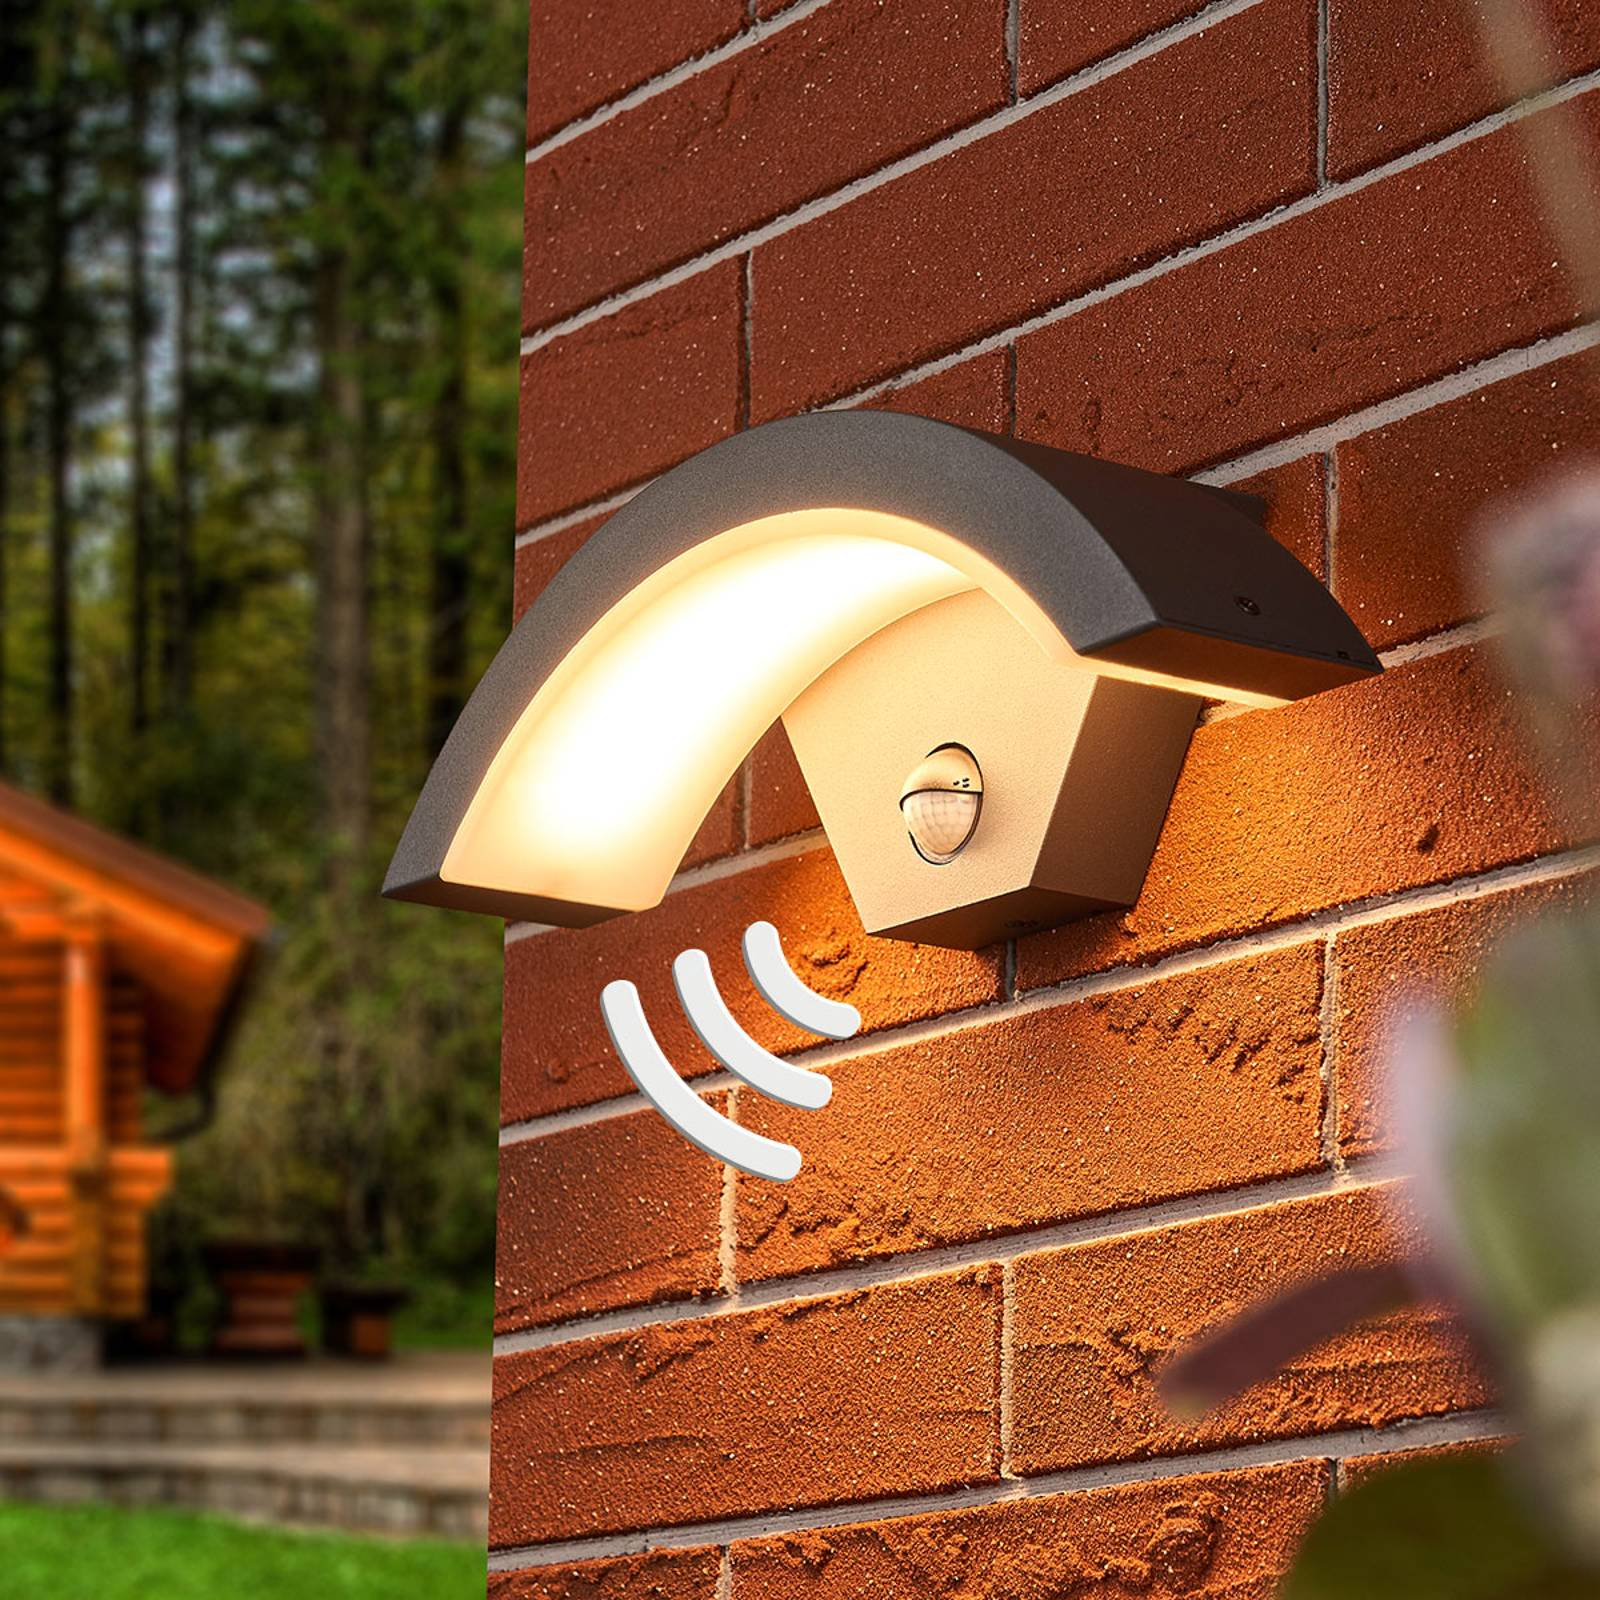 Sensor LED outdoor wall lamp Jule from Lampenwelt.com